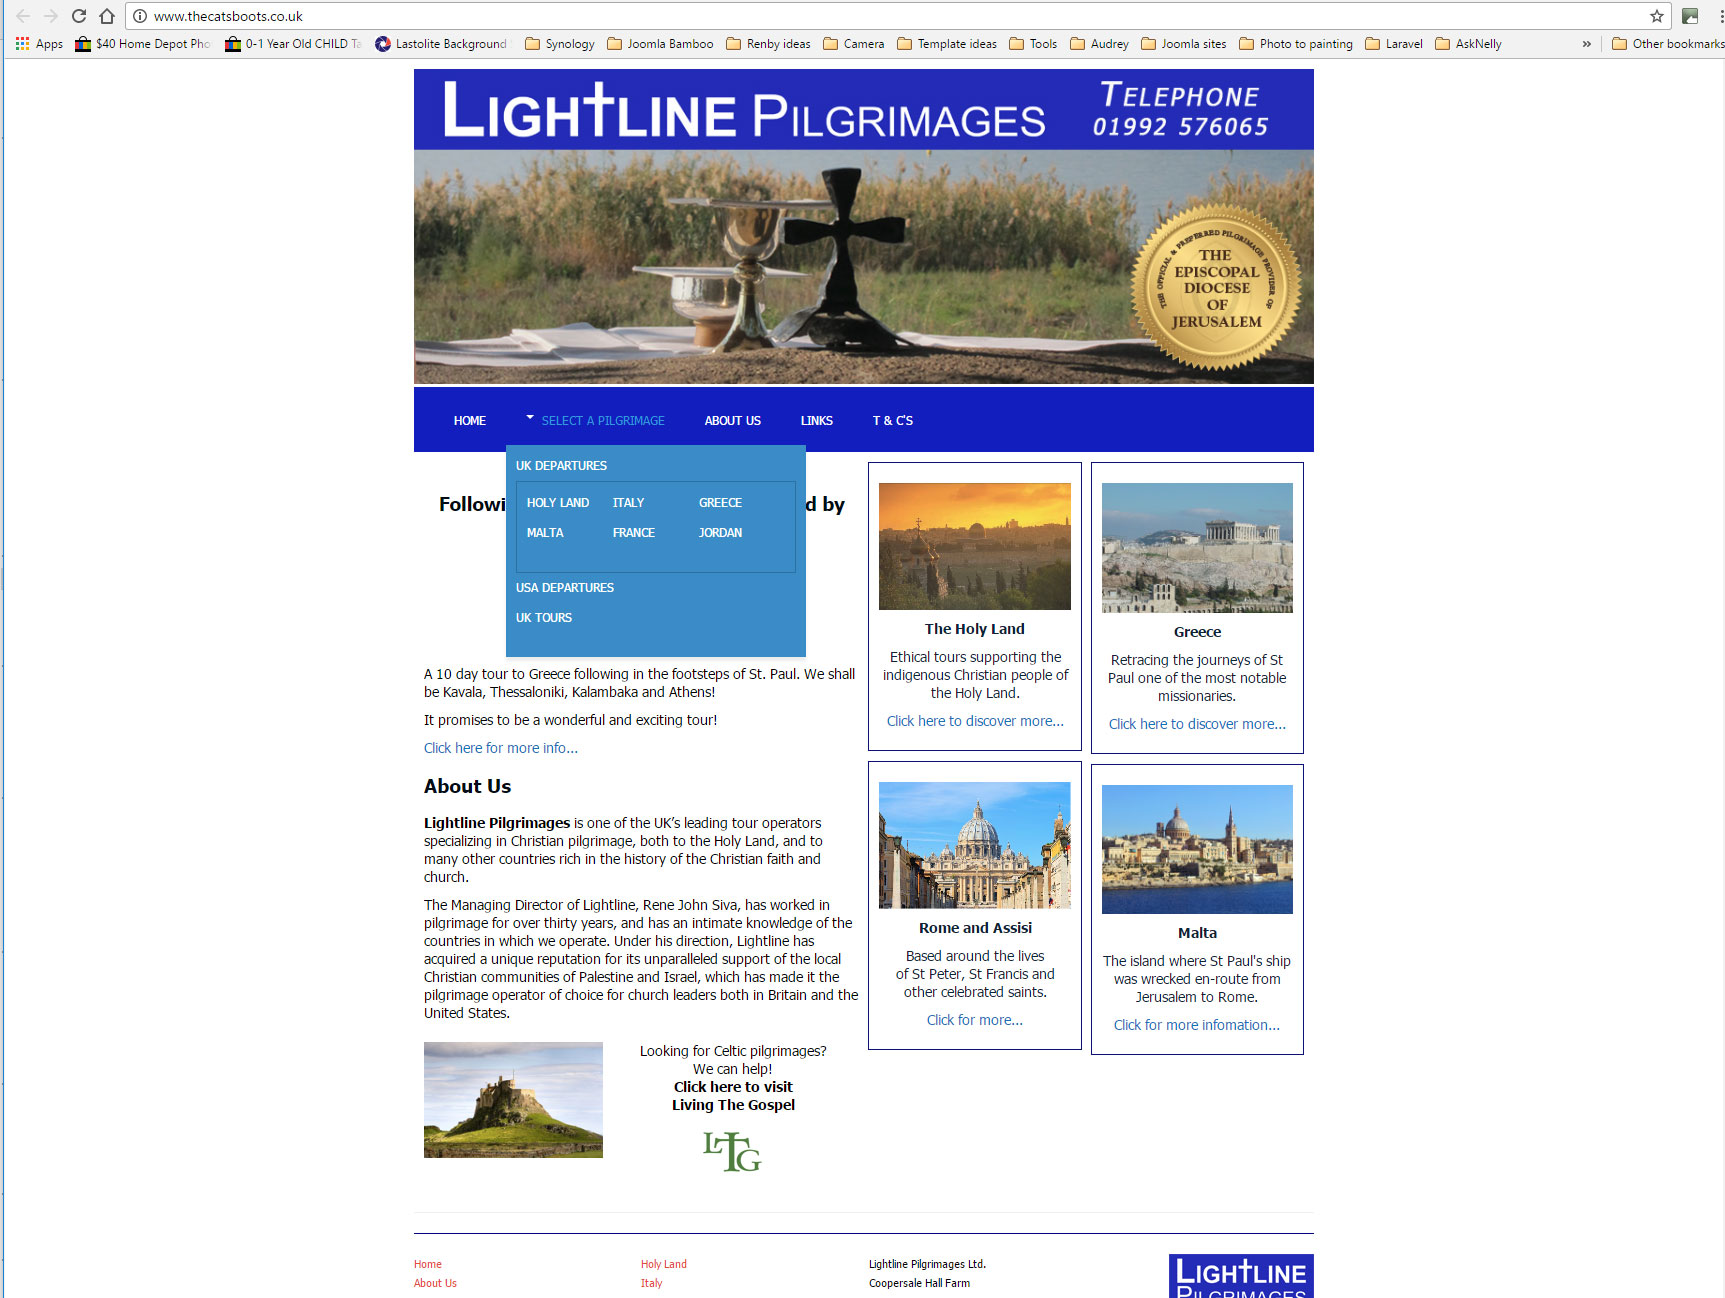 home-page_2016-09-22.jpg